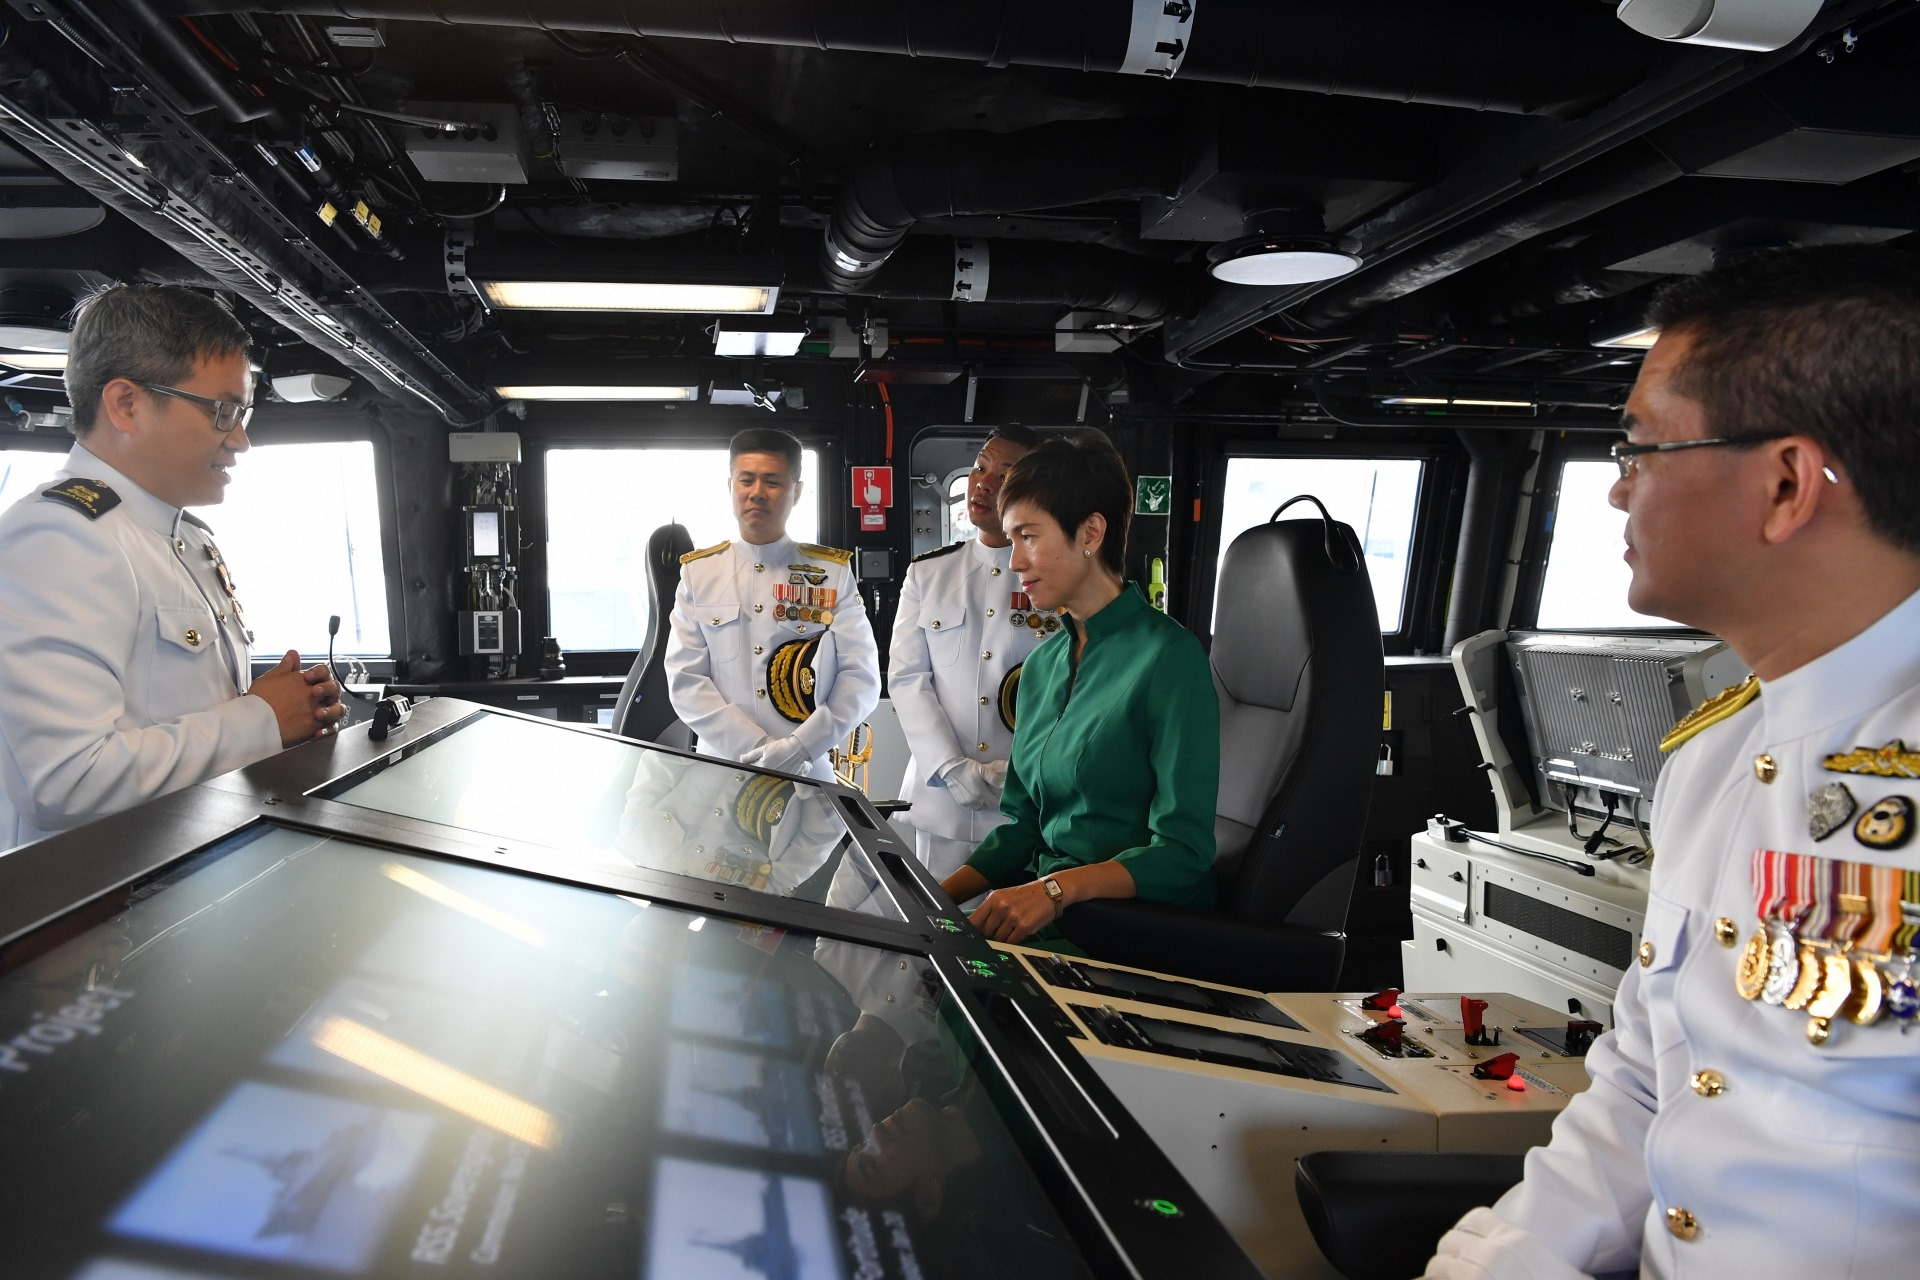 Mrs Teo receiving a brief at RSS Dauntless' Integrated Command Centre, accompanied by the Chief of Navy Rear-Admiral Lew Chuen Hong (right).